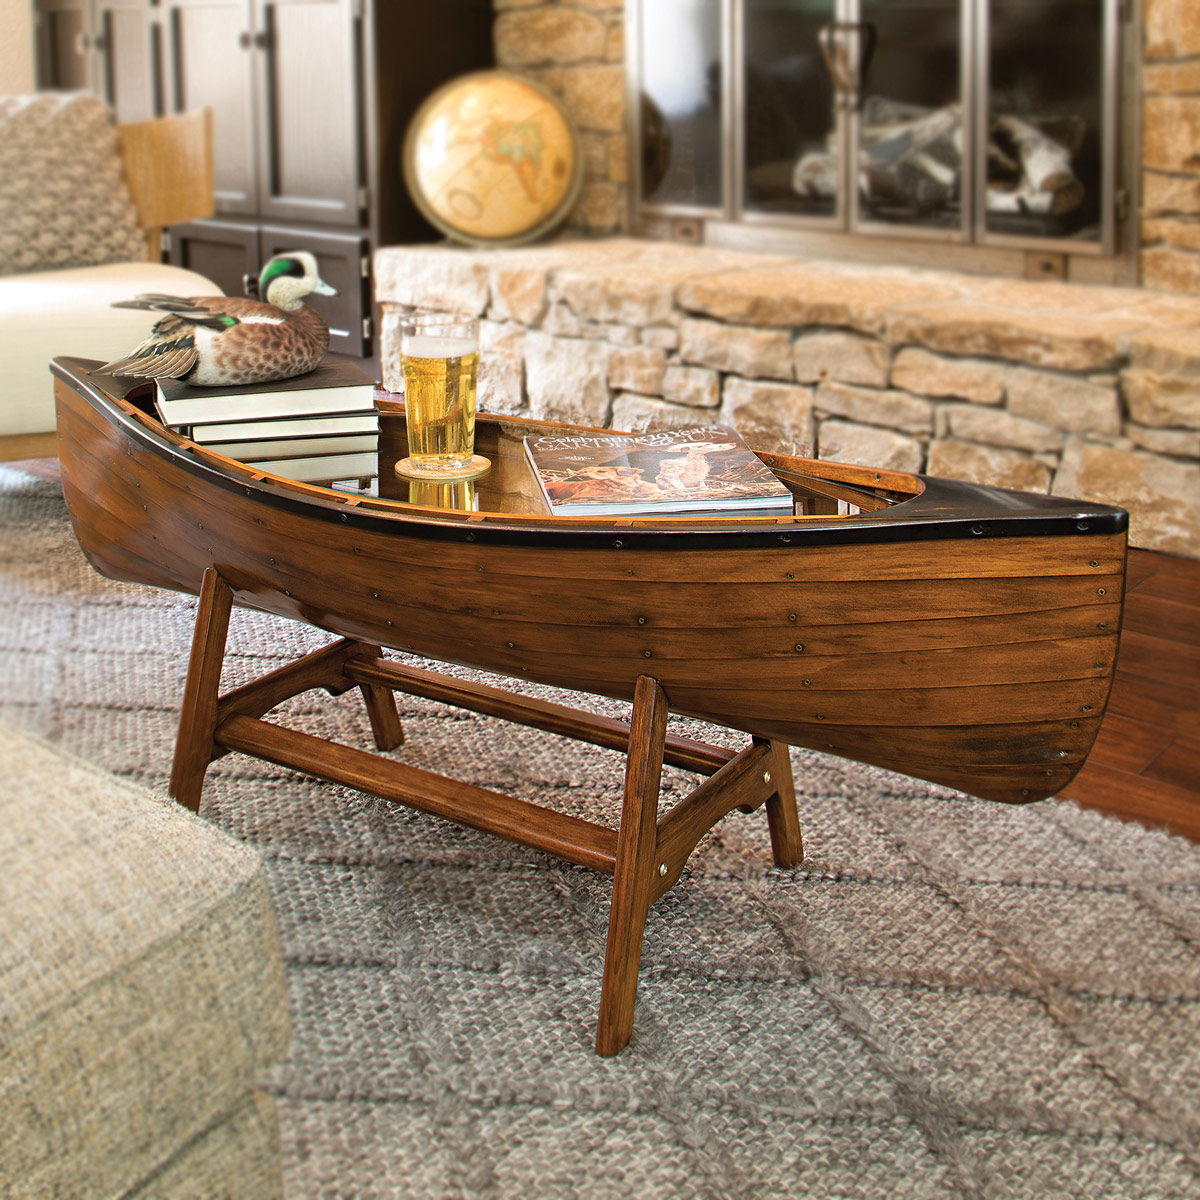 Canoe Lodge Coffee Table Backordered Until 10 1 2021 [ 1200 x 1200 Pixel ]